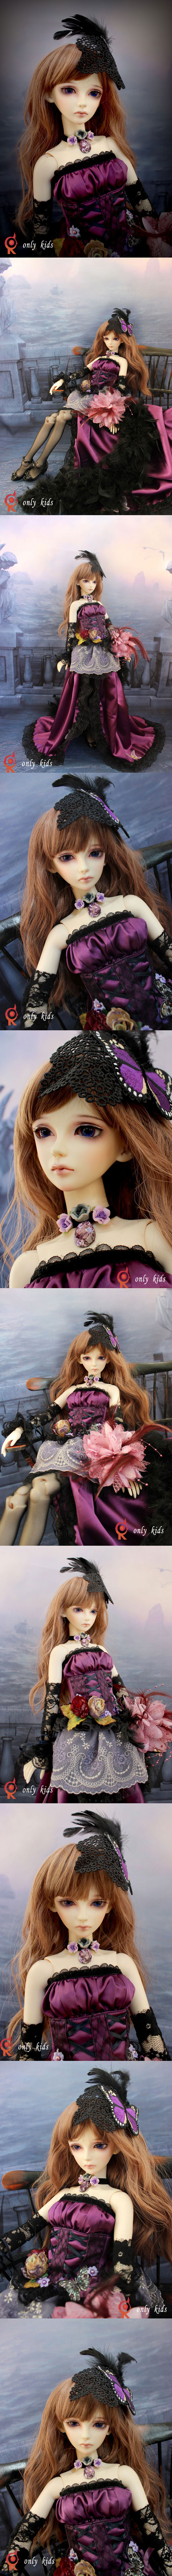 BJD aster Girl 56cm Boll-jointed doll